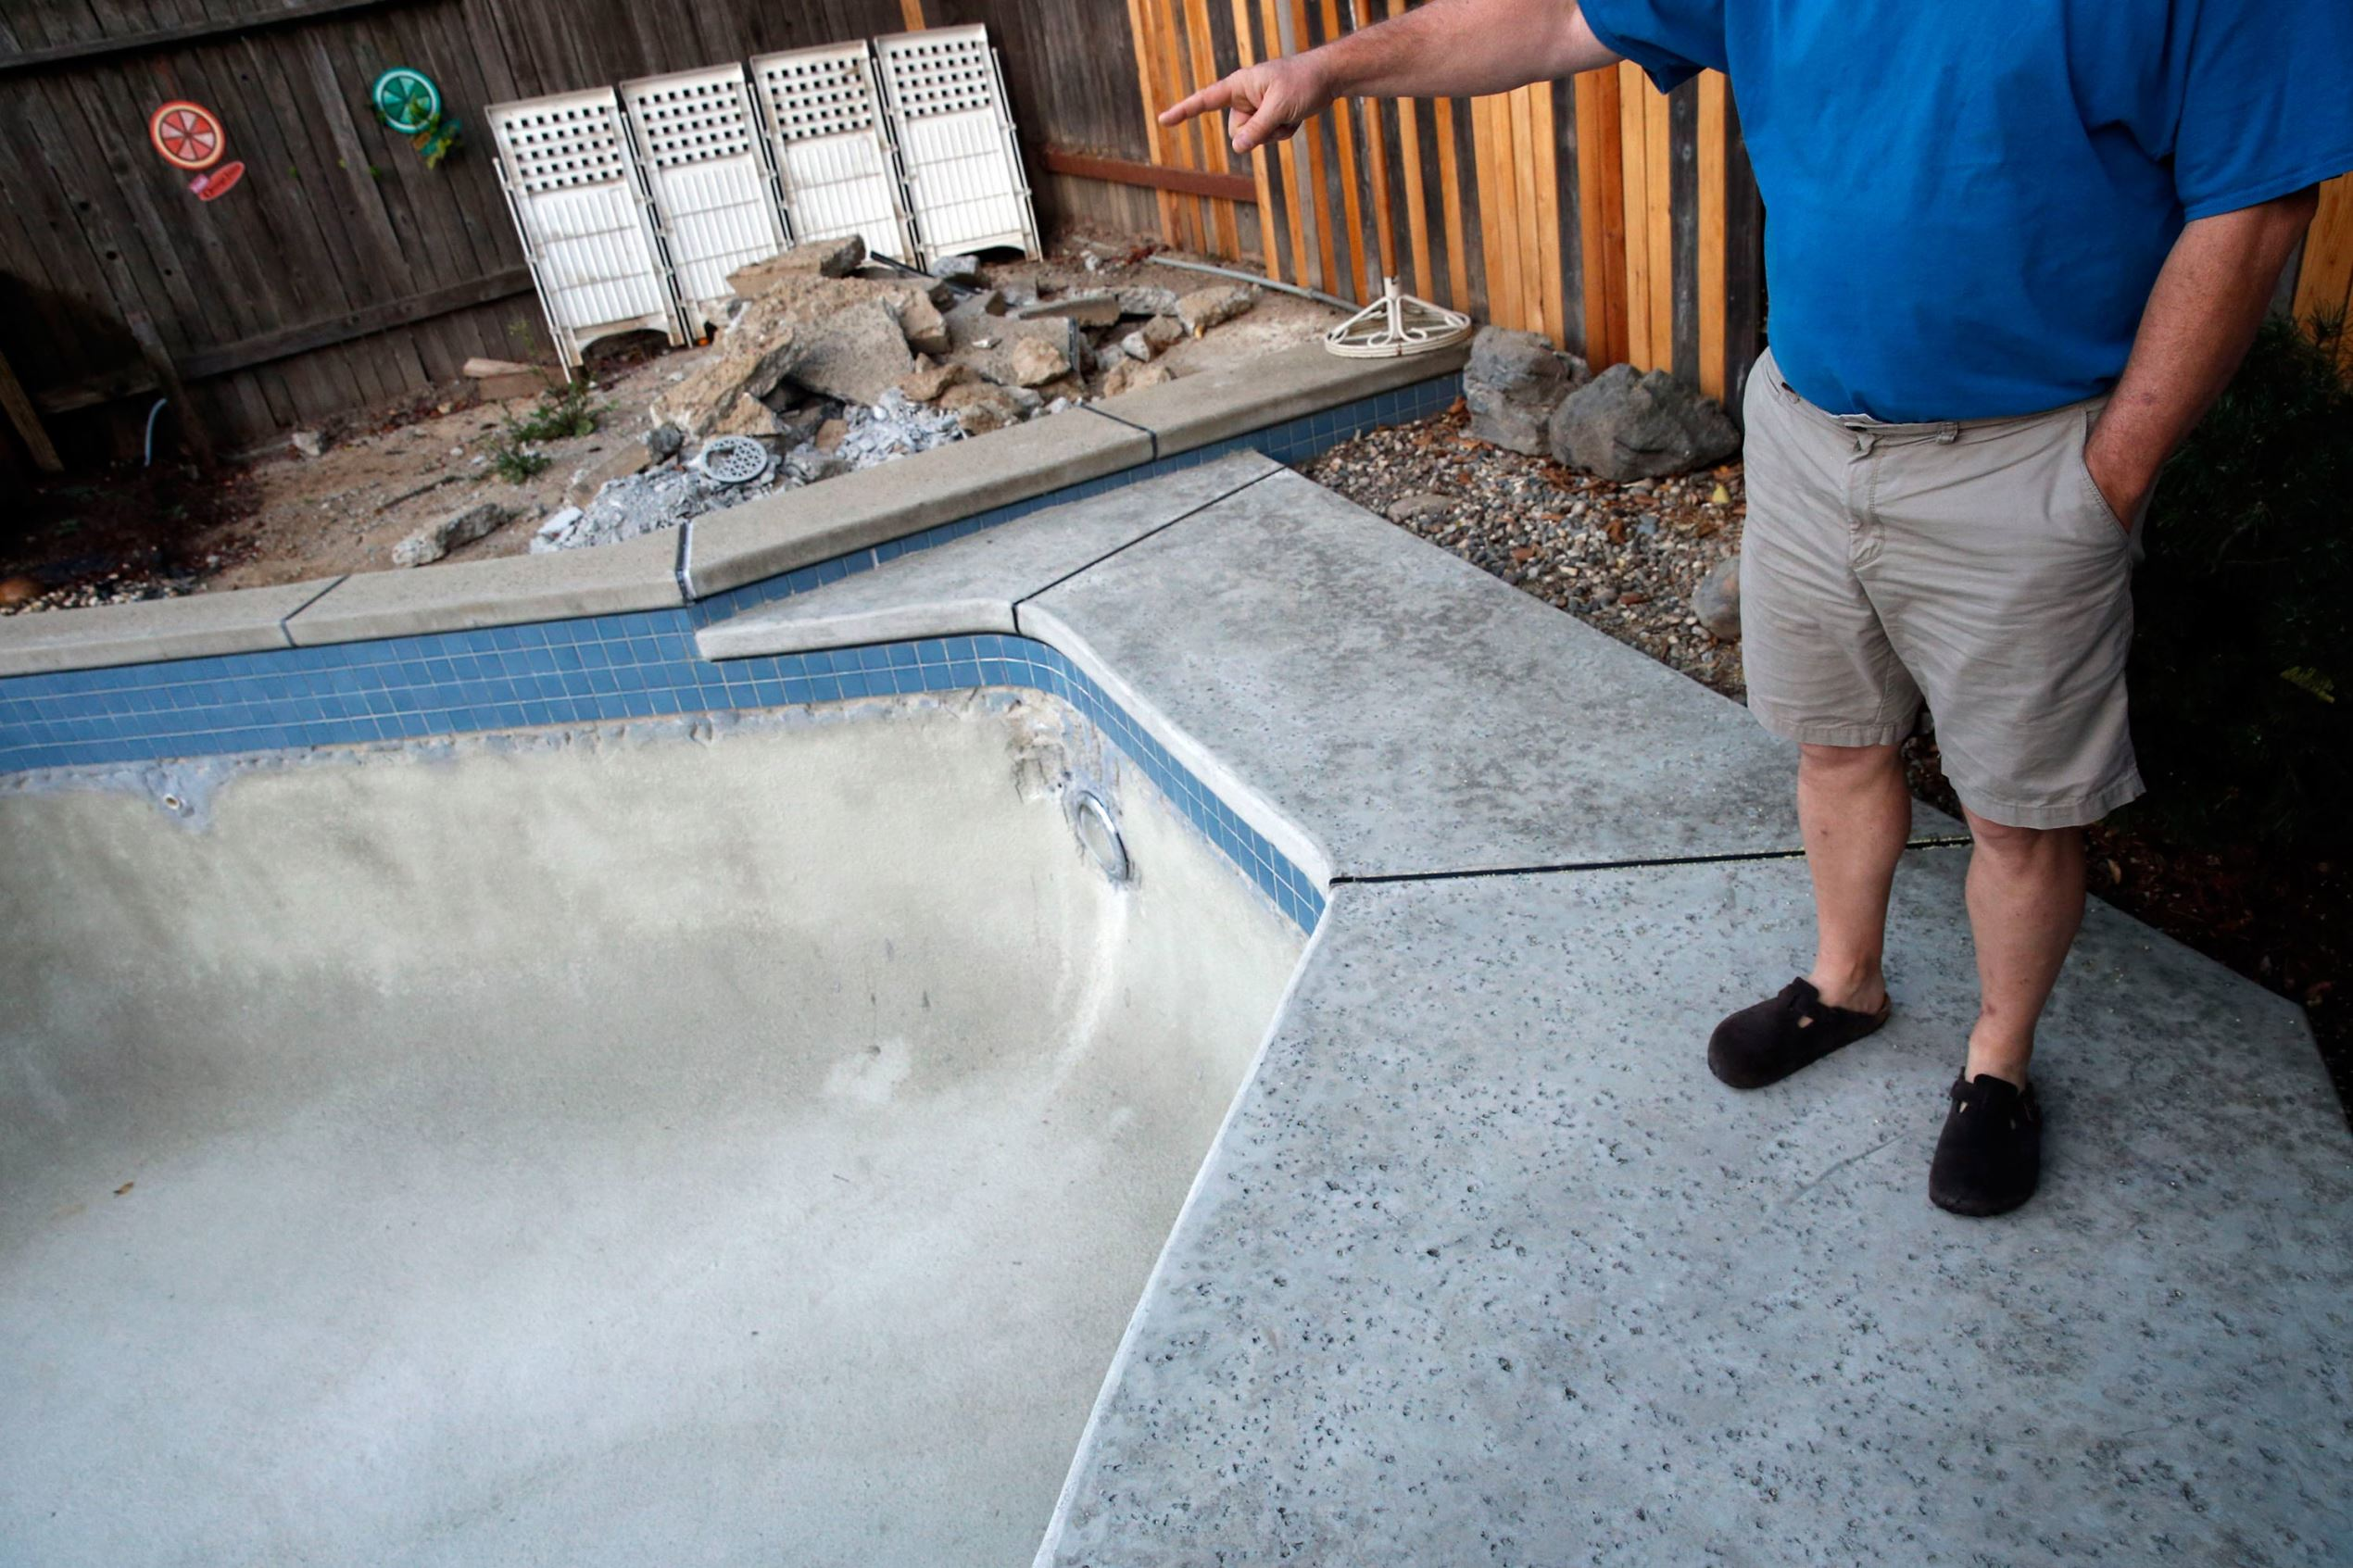 A homeowner points toward his drained swimming pool that cannot be refilled this summer due to water restrictions in Sacramento, California.